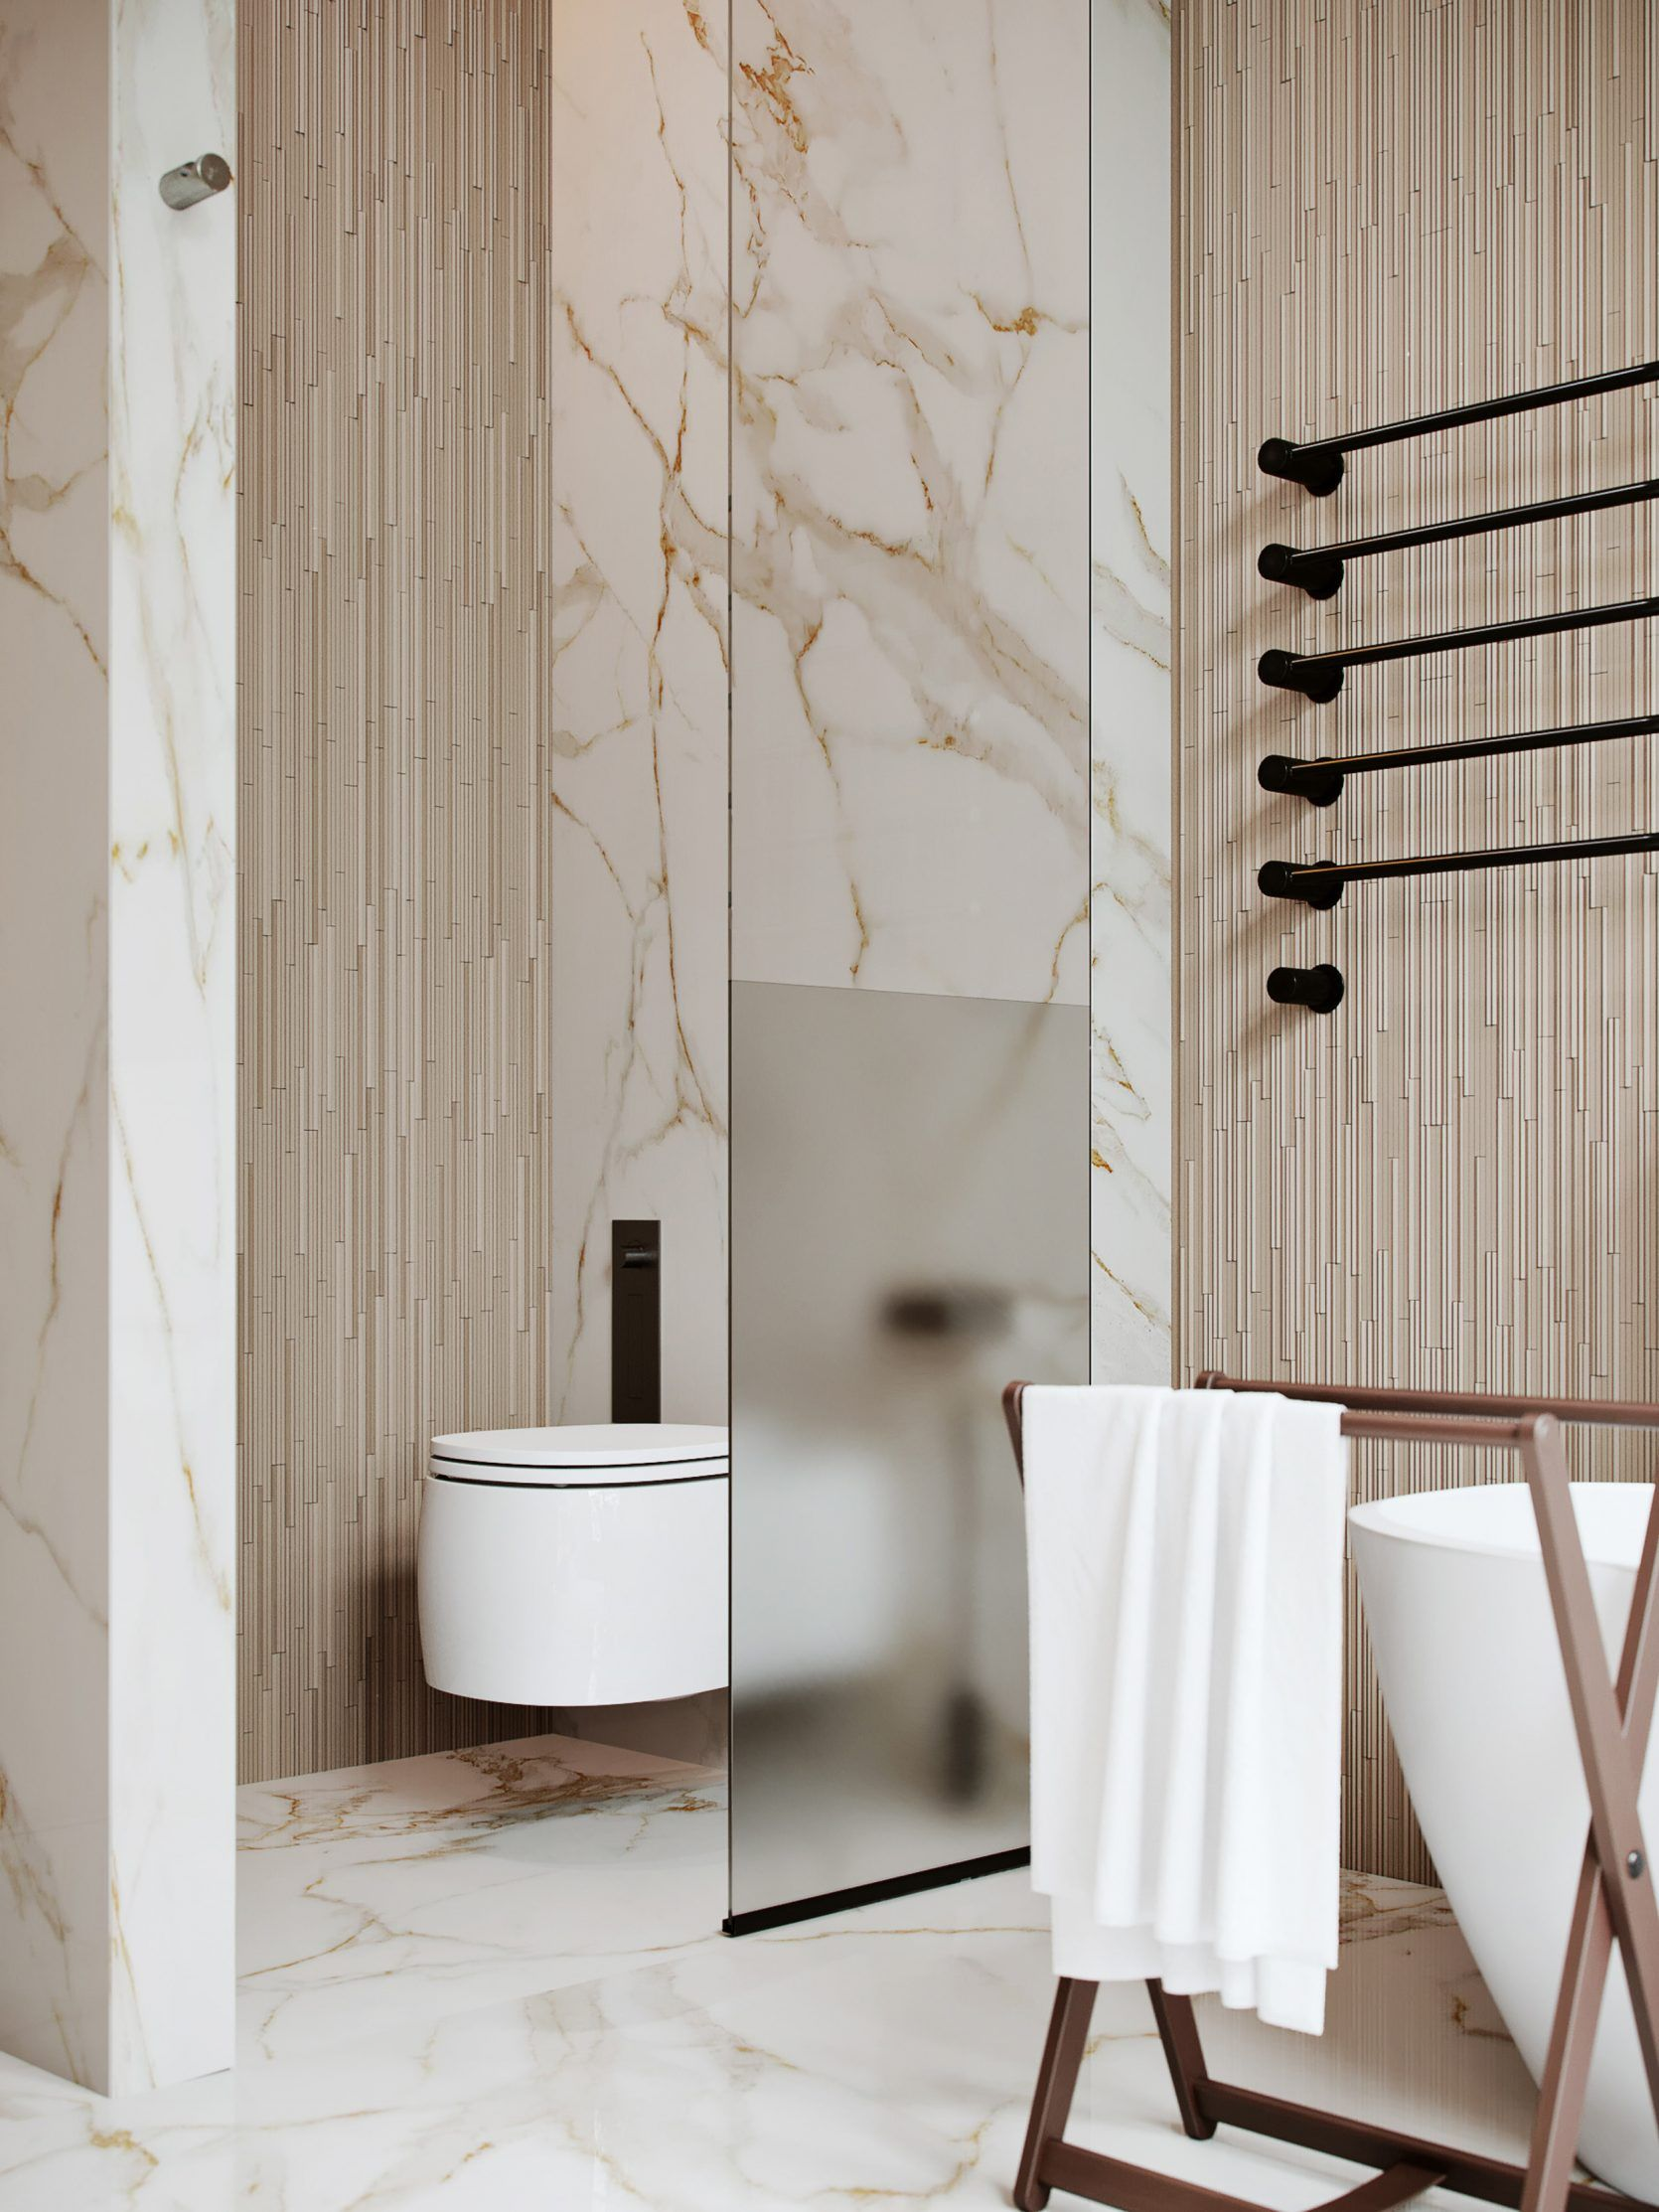 10 Of The Most Exciting Bathroom Design Trends For 2019 Diseno